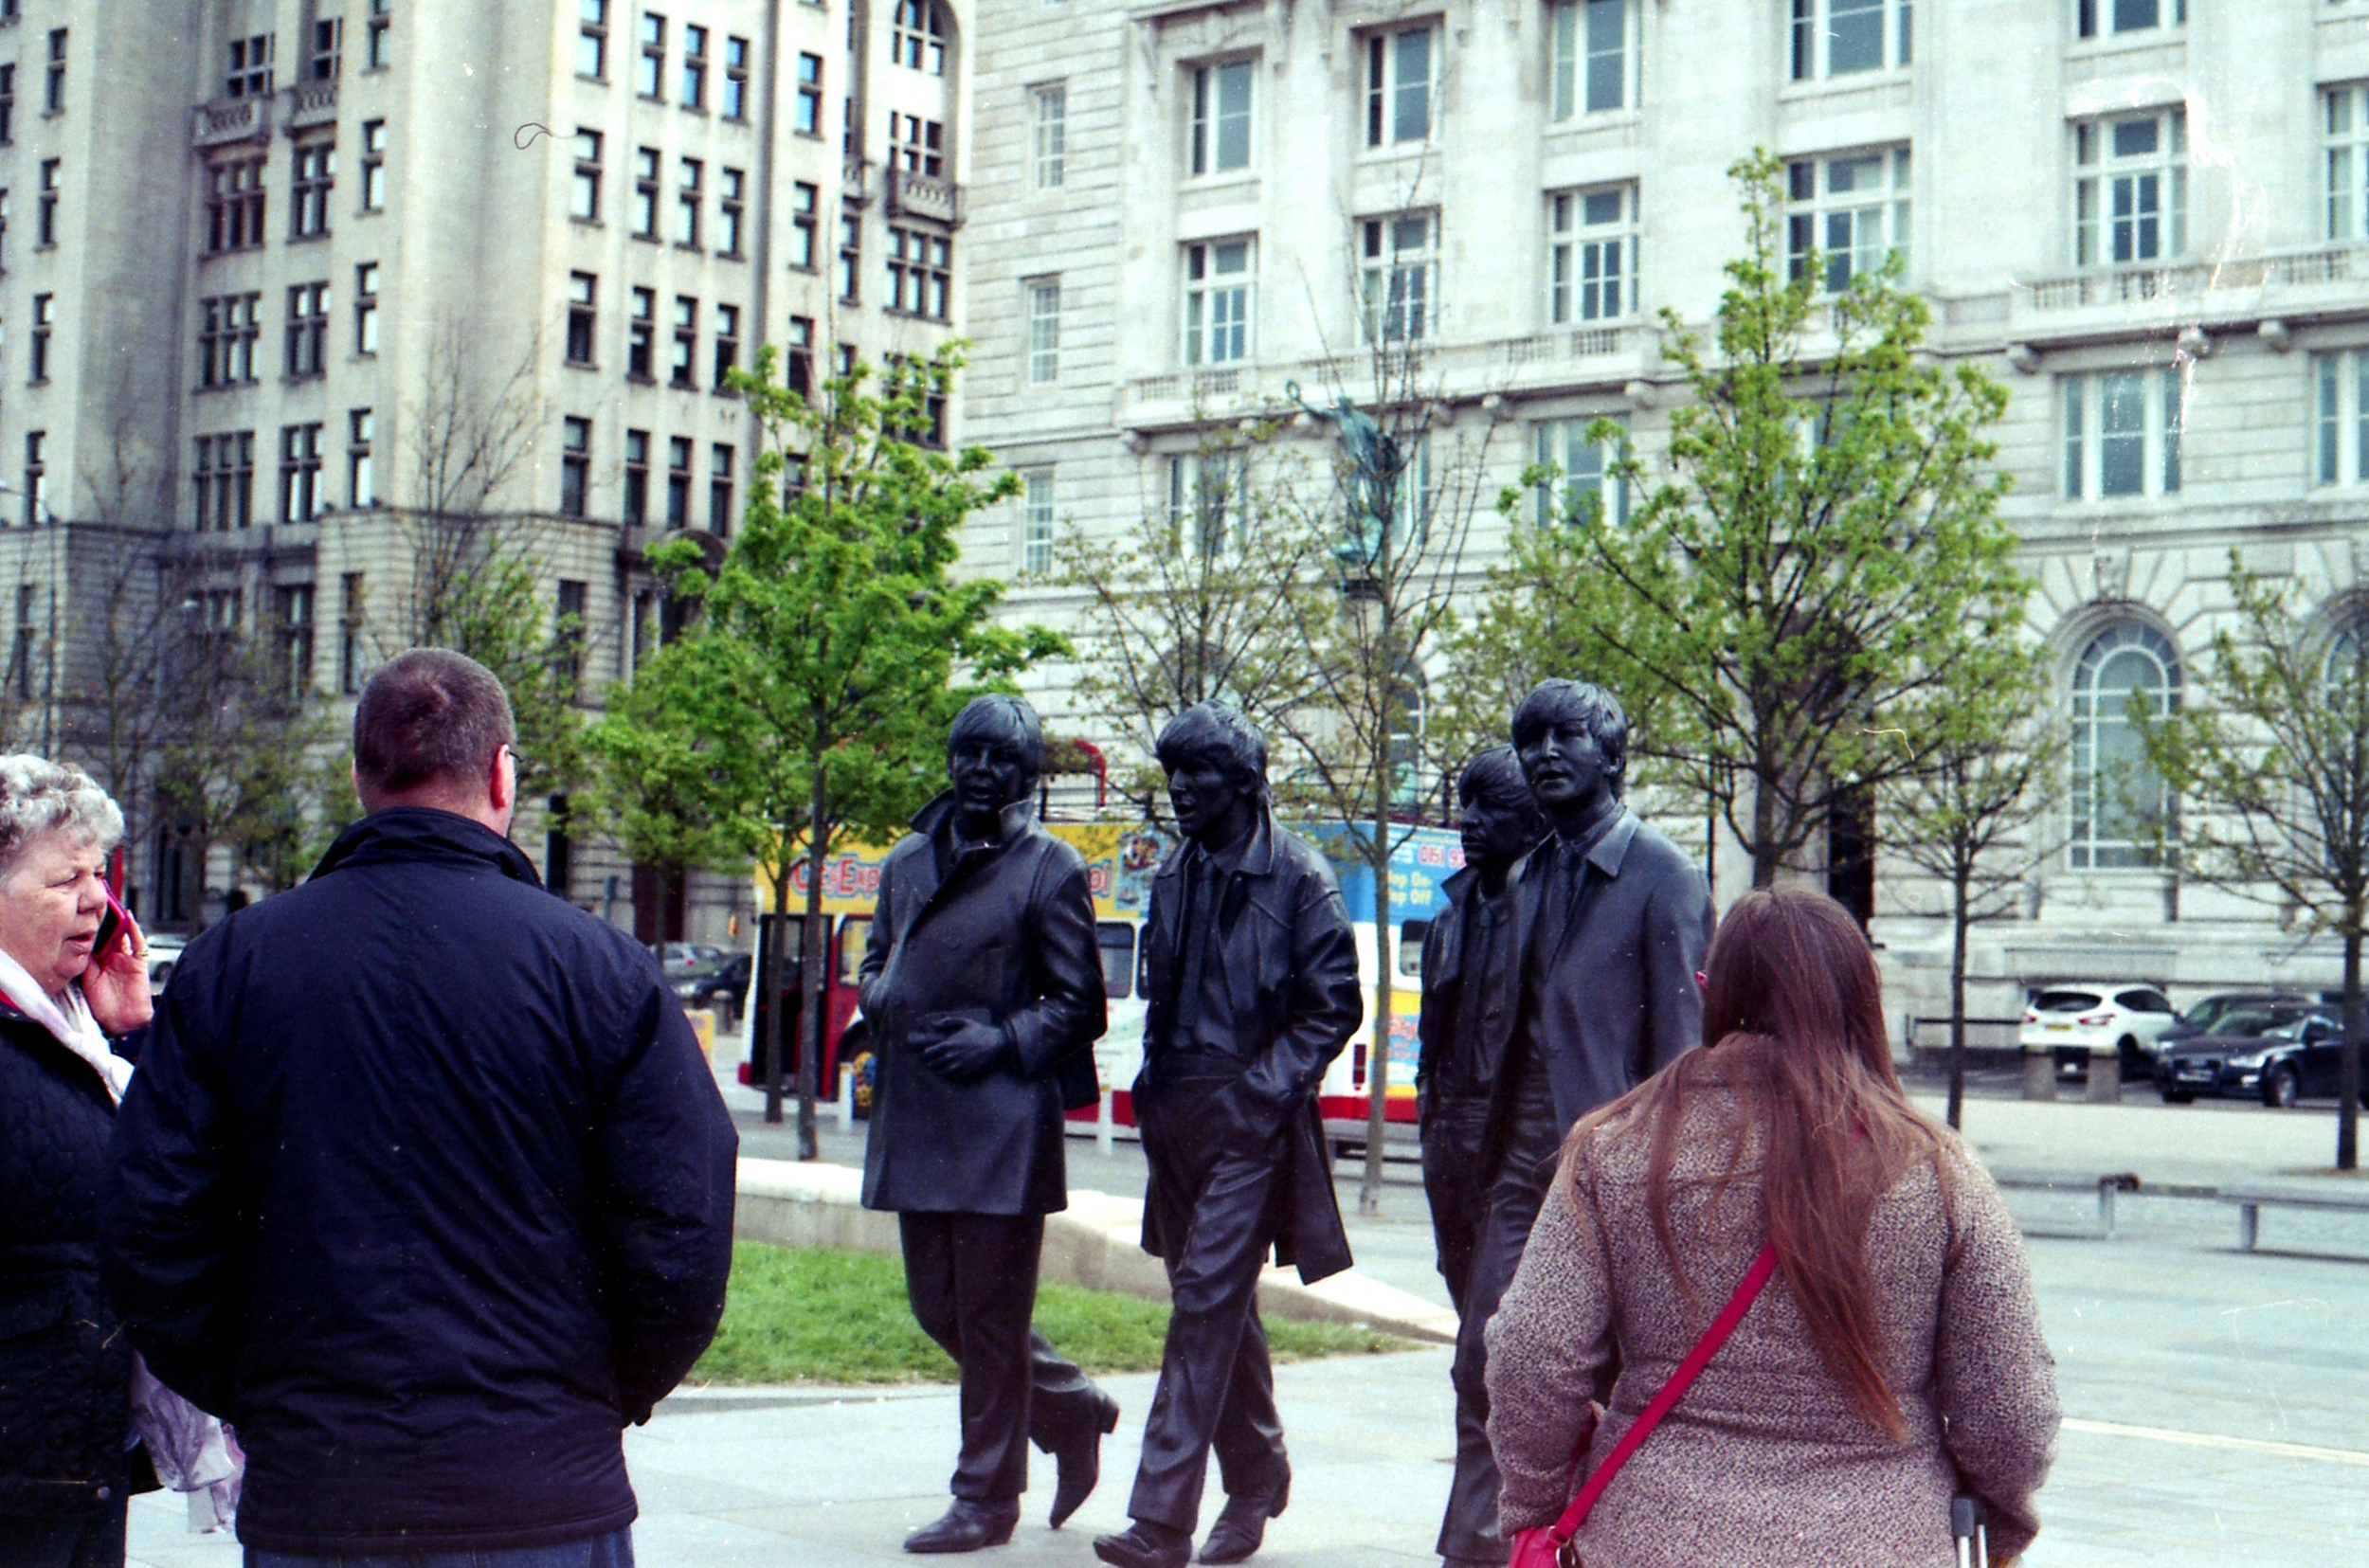 137/366 - As we went to Everton on day 136 we spent the night in Liverpool and did a little bit of sight seeing on day 137. I patiently waited a while for people to move away from The Beatles but after realising that there would always be people around them I decided to include them in the photo. I think I like it.